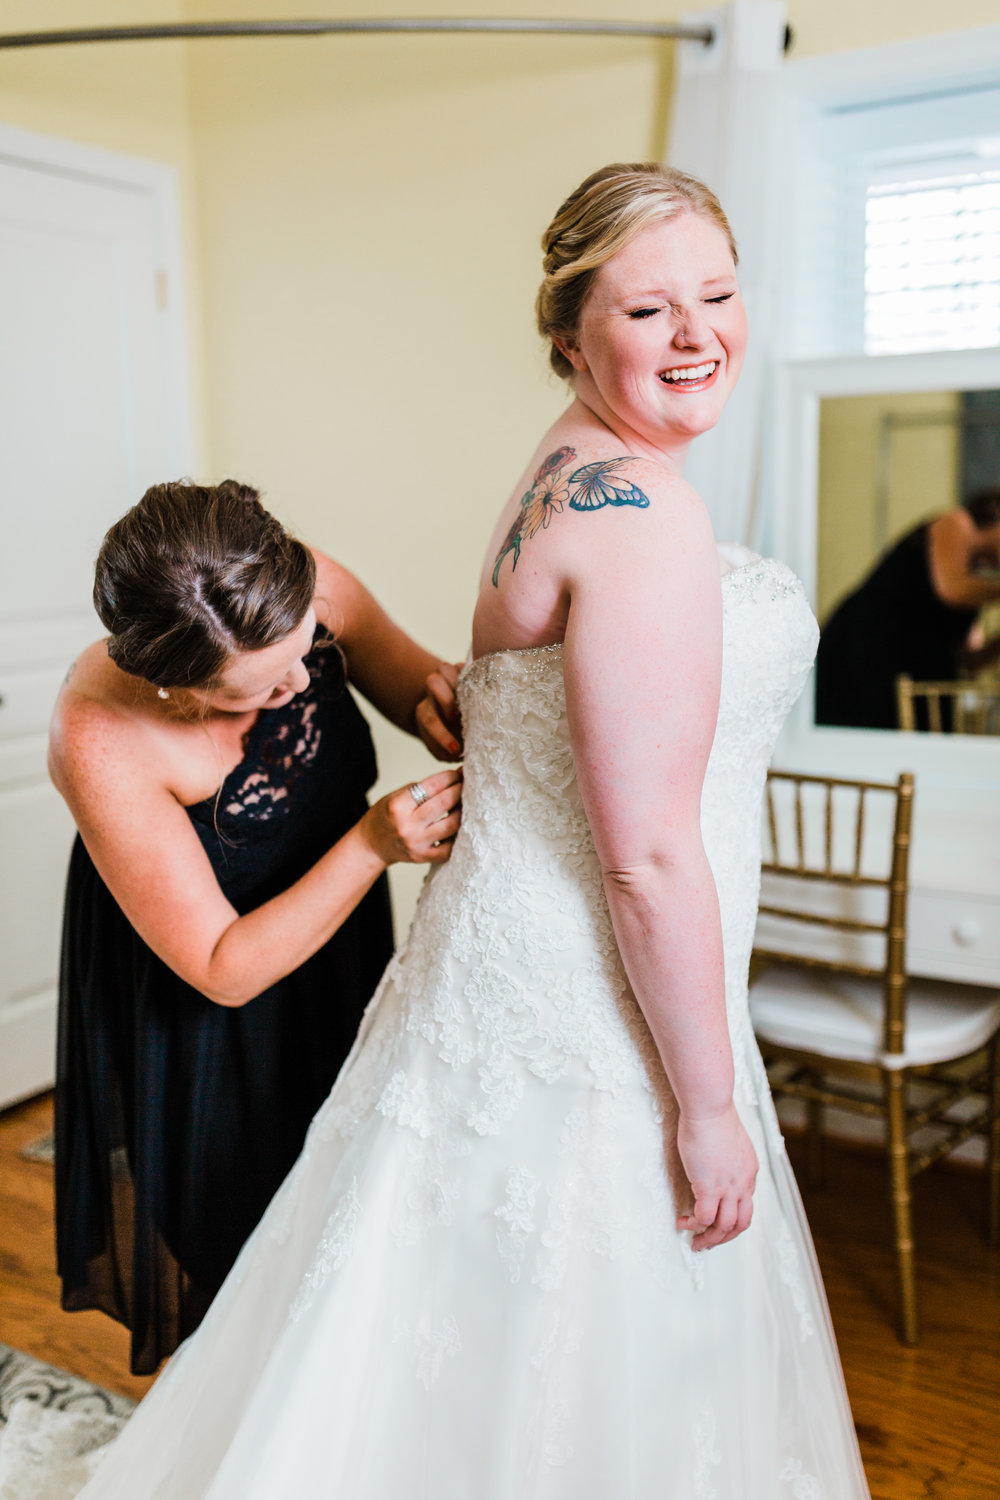 bride laughing while getting ready in her bridal suite - pasadena md wedding - best maryland wedding photographer and videographer - waterfront wedding venues in maryland - kurtz's beach bridal cottage